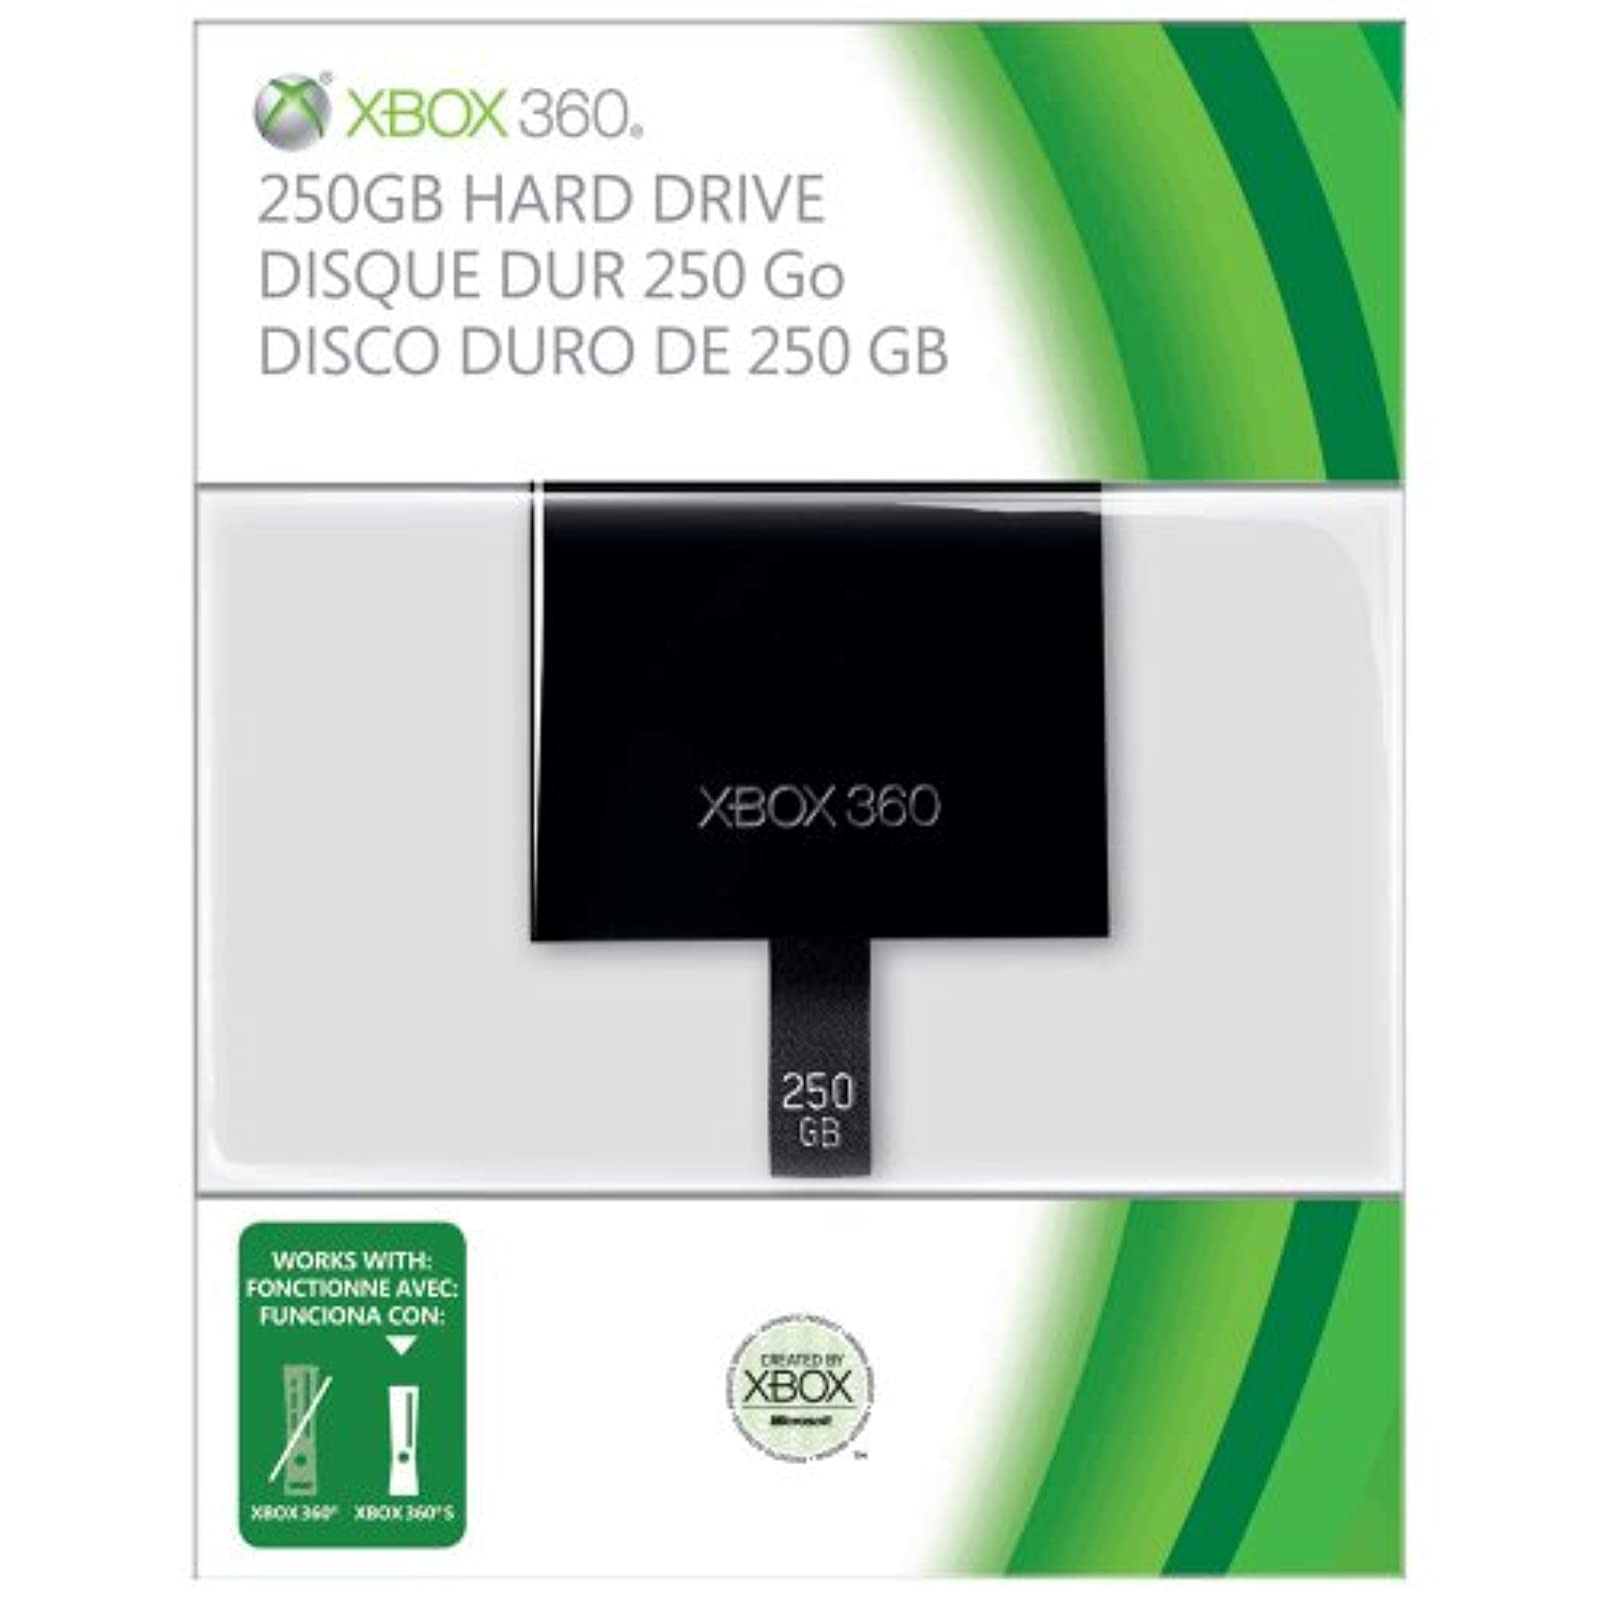 250GB HardDrive Xbox Slim Only For Xbox 360